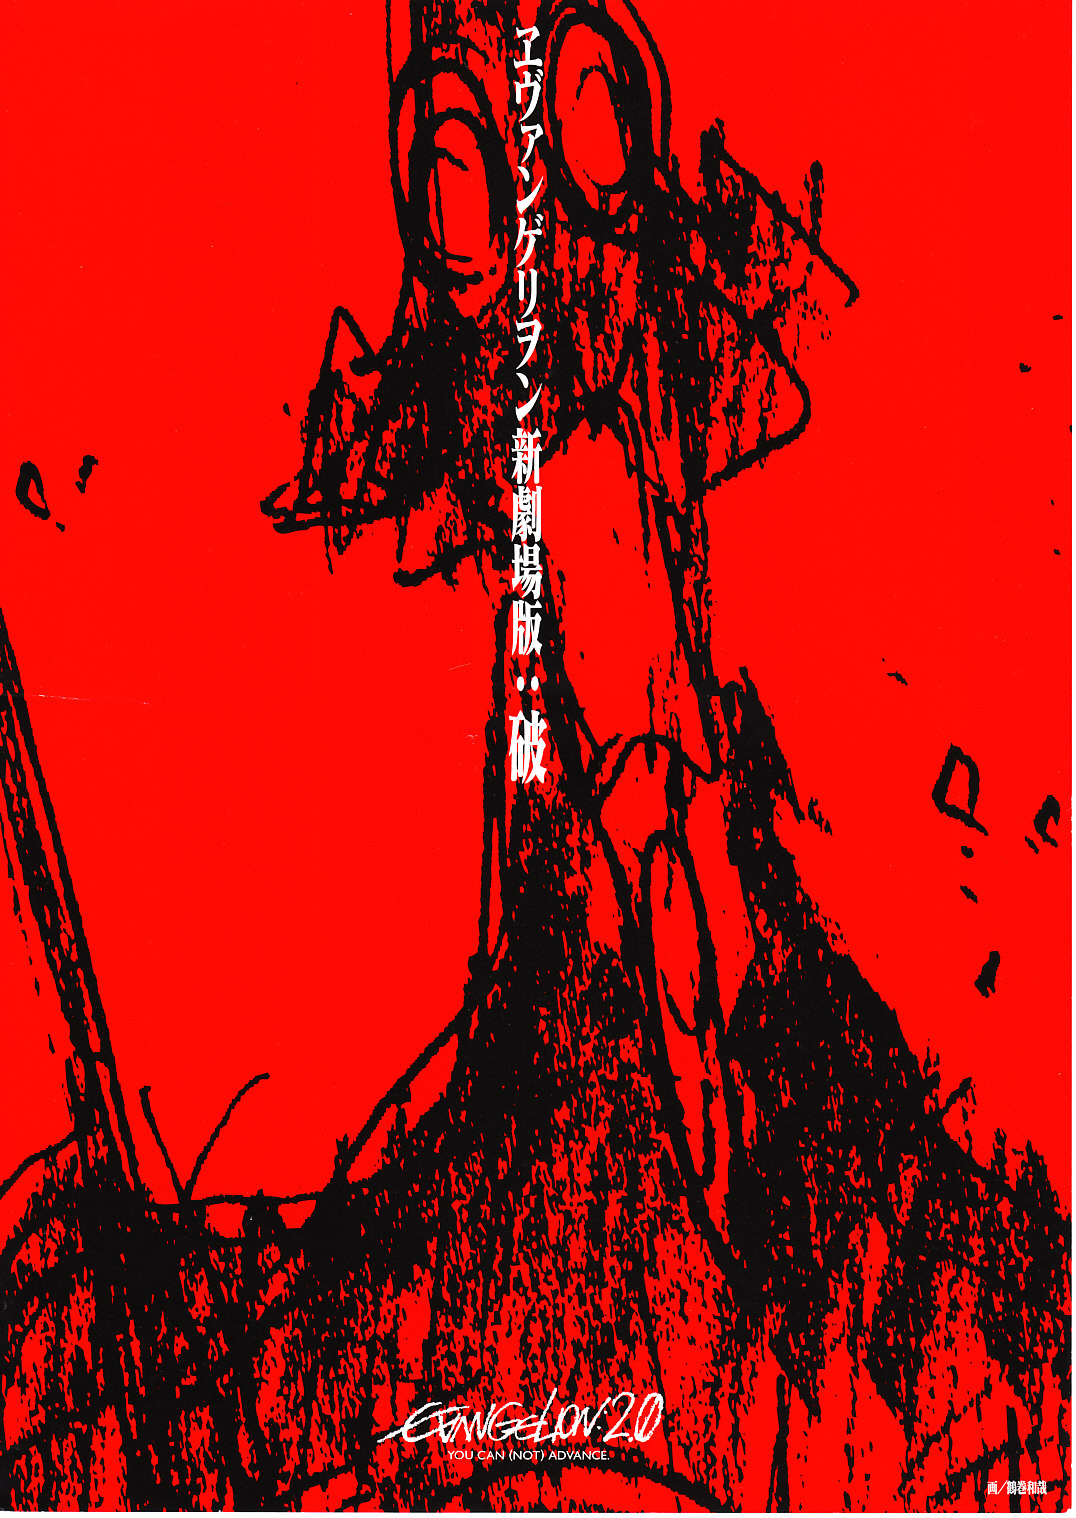 Poster for Evangelion 2.22: You Can (Not) Advance